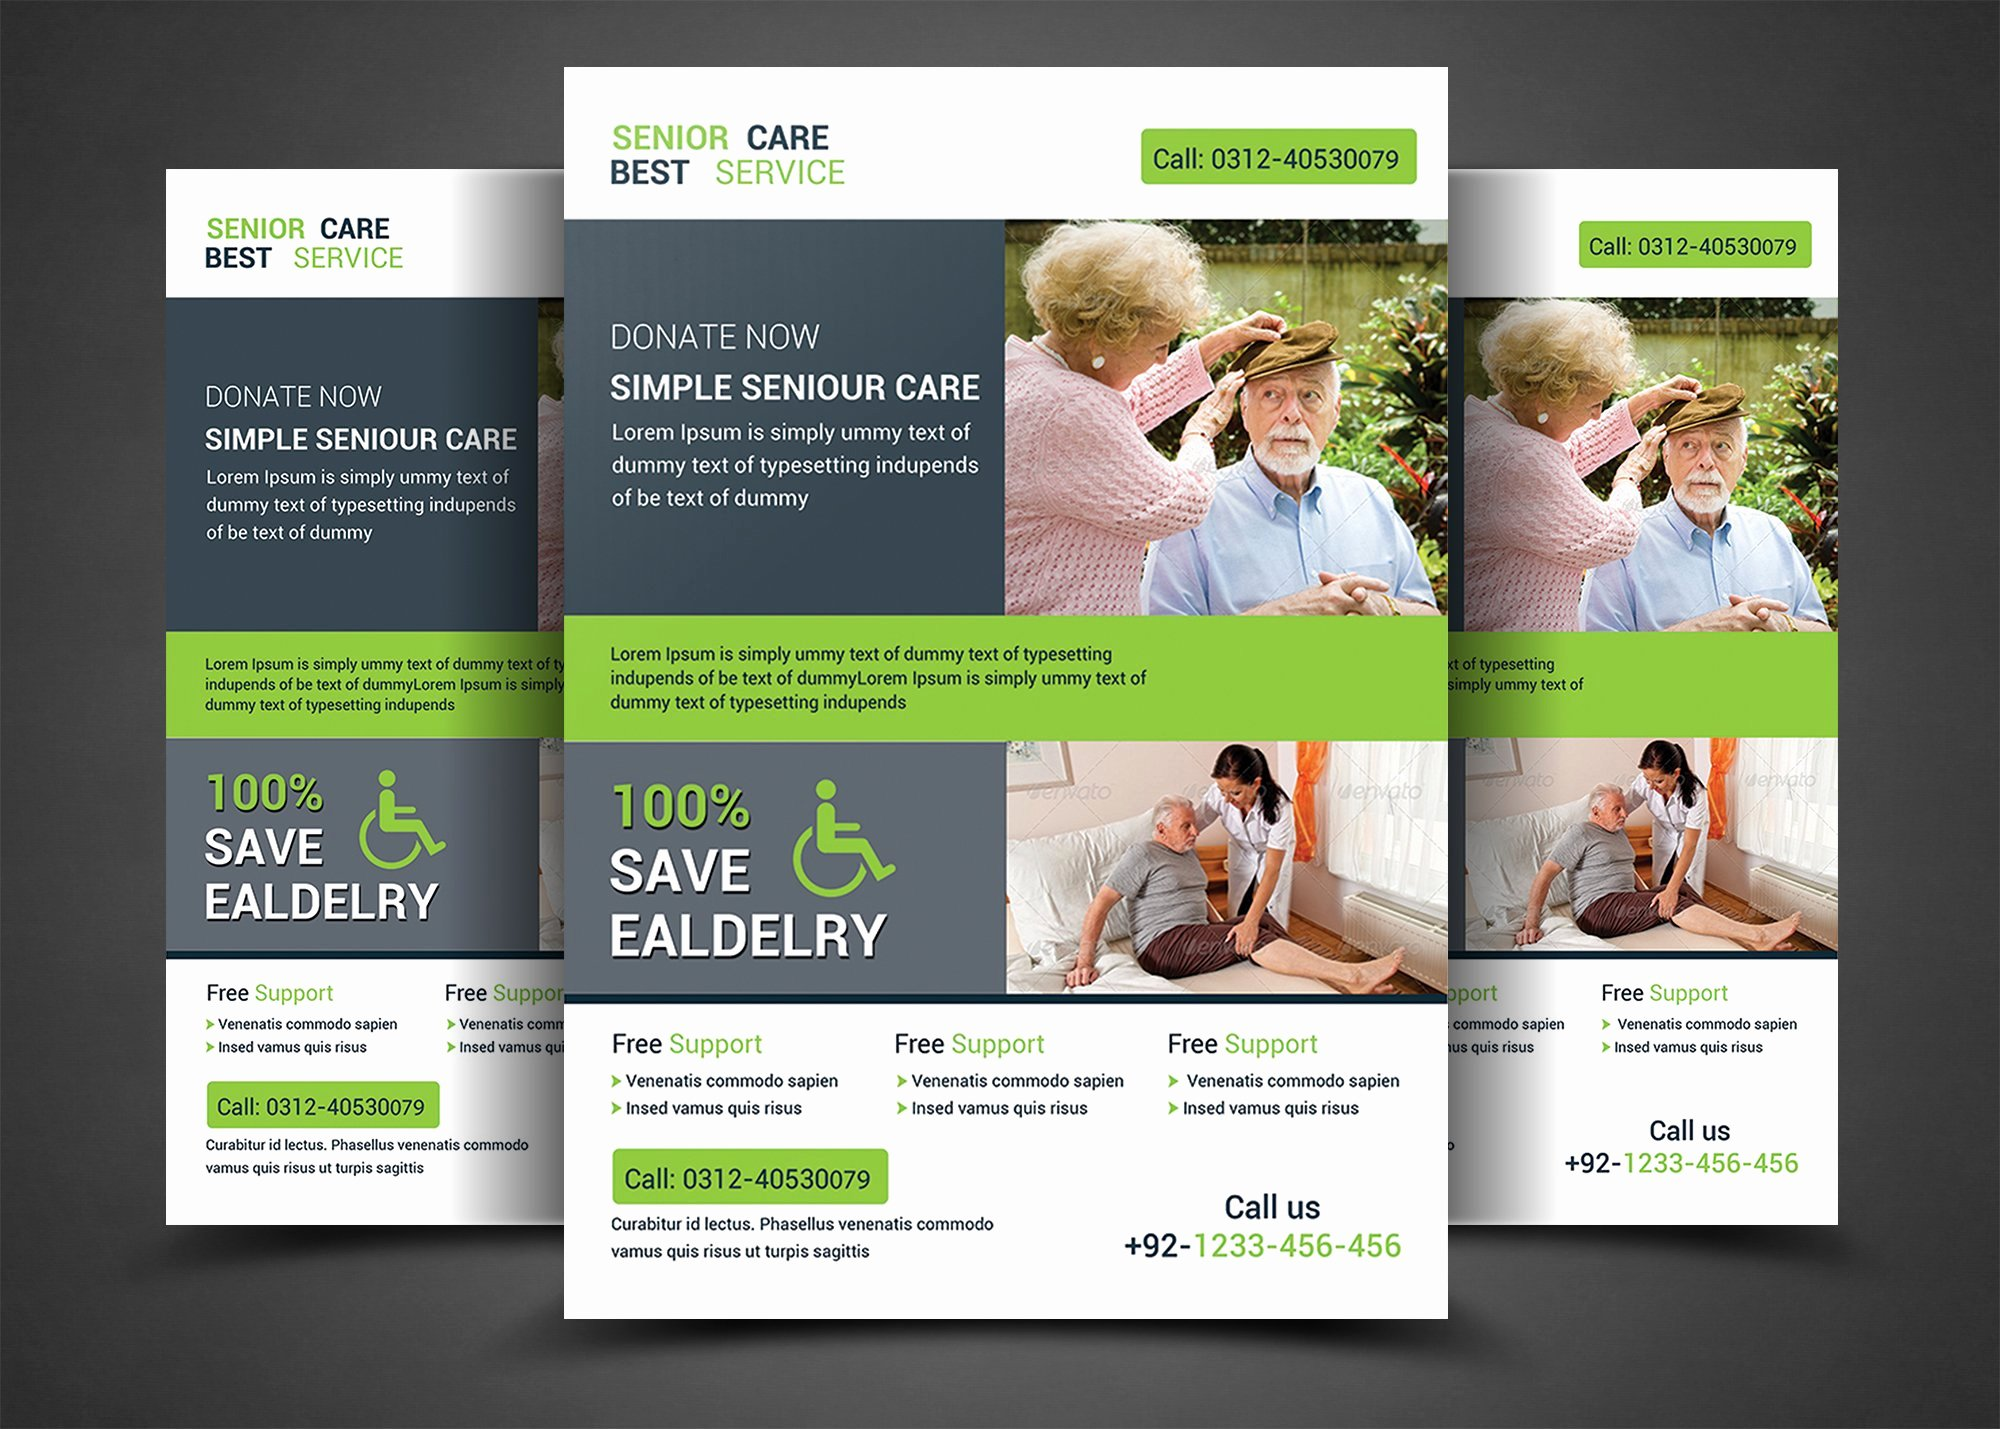 Home Health Care Flyers New Home Care Flyer Templates Flyer Templates Creative Market